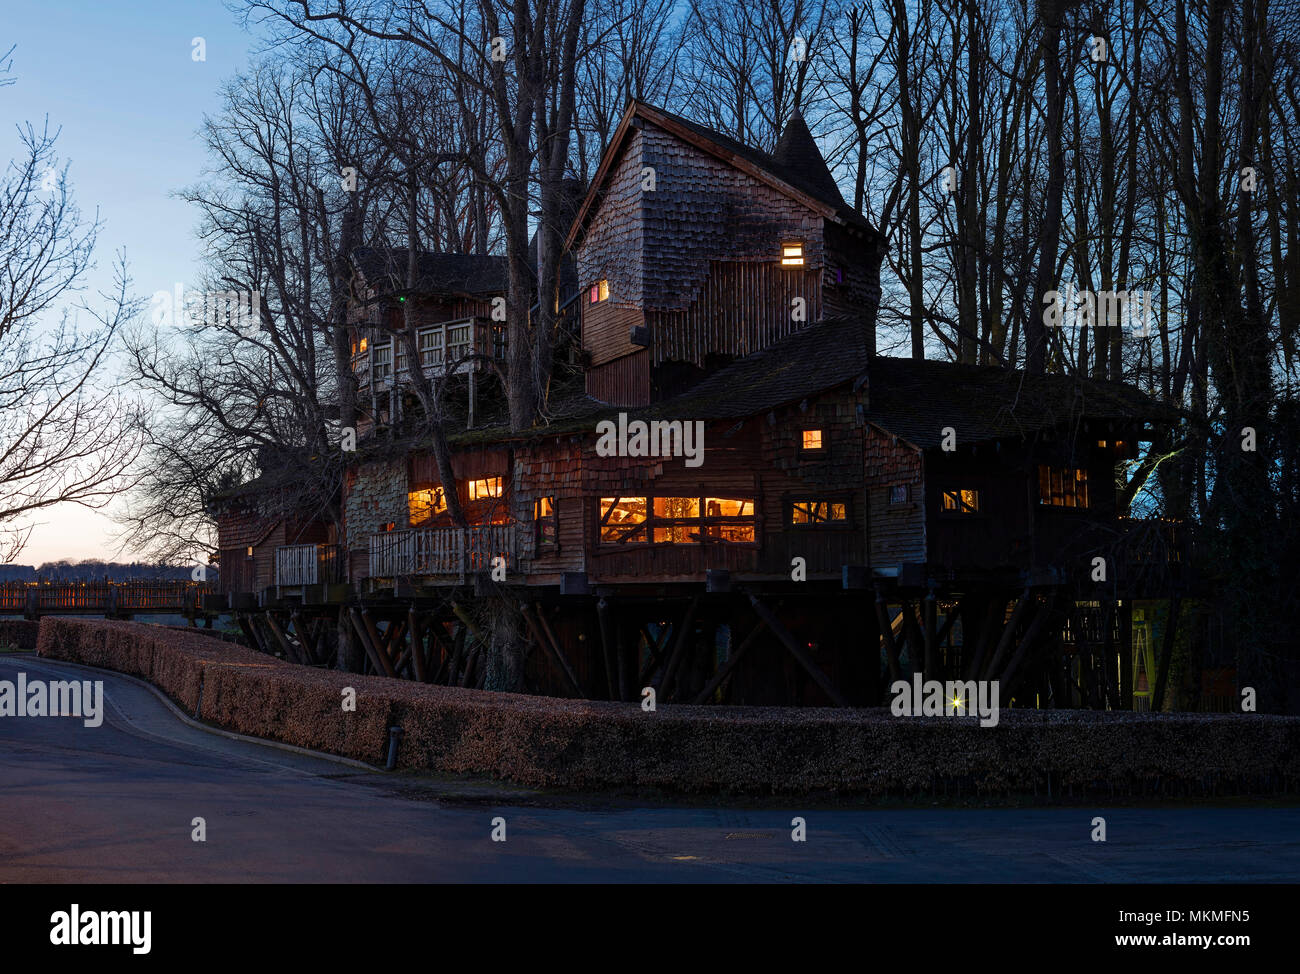 The Treehouse Restaurant at dusk in The Alnwick Garden, Alnwick, Northumberland, North East England, United Kingdom - Stock Image